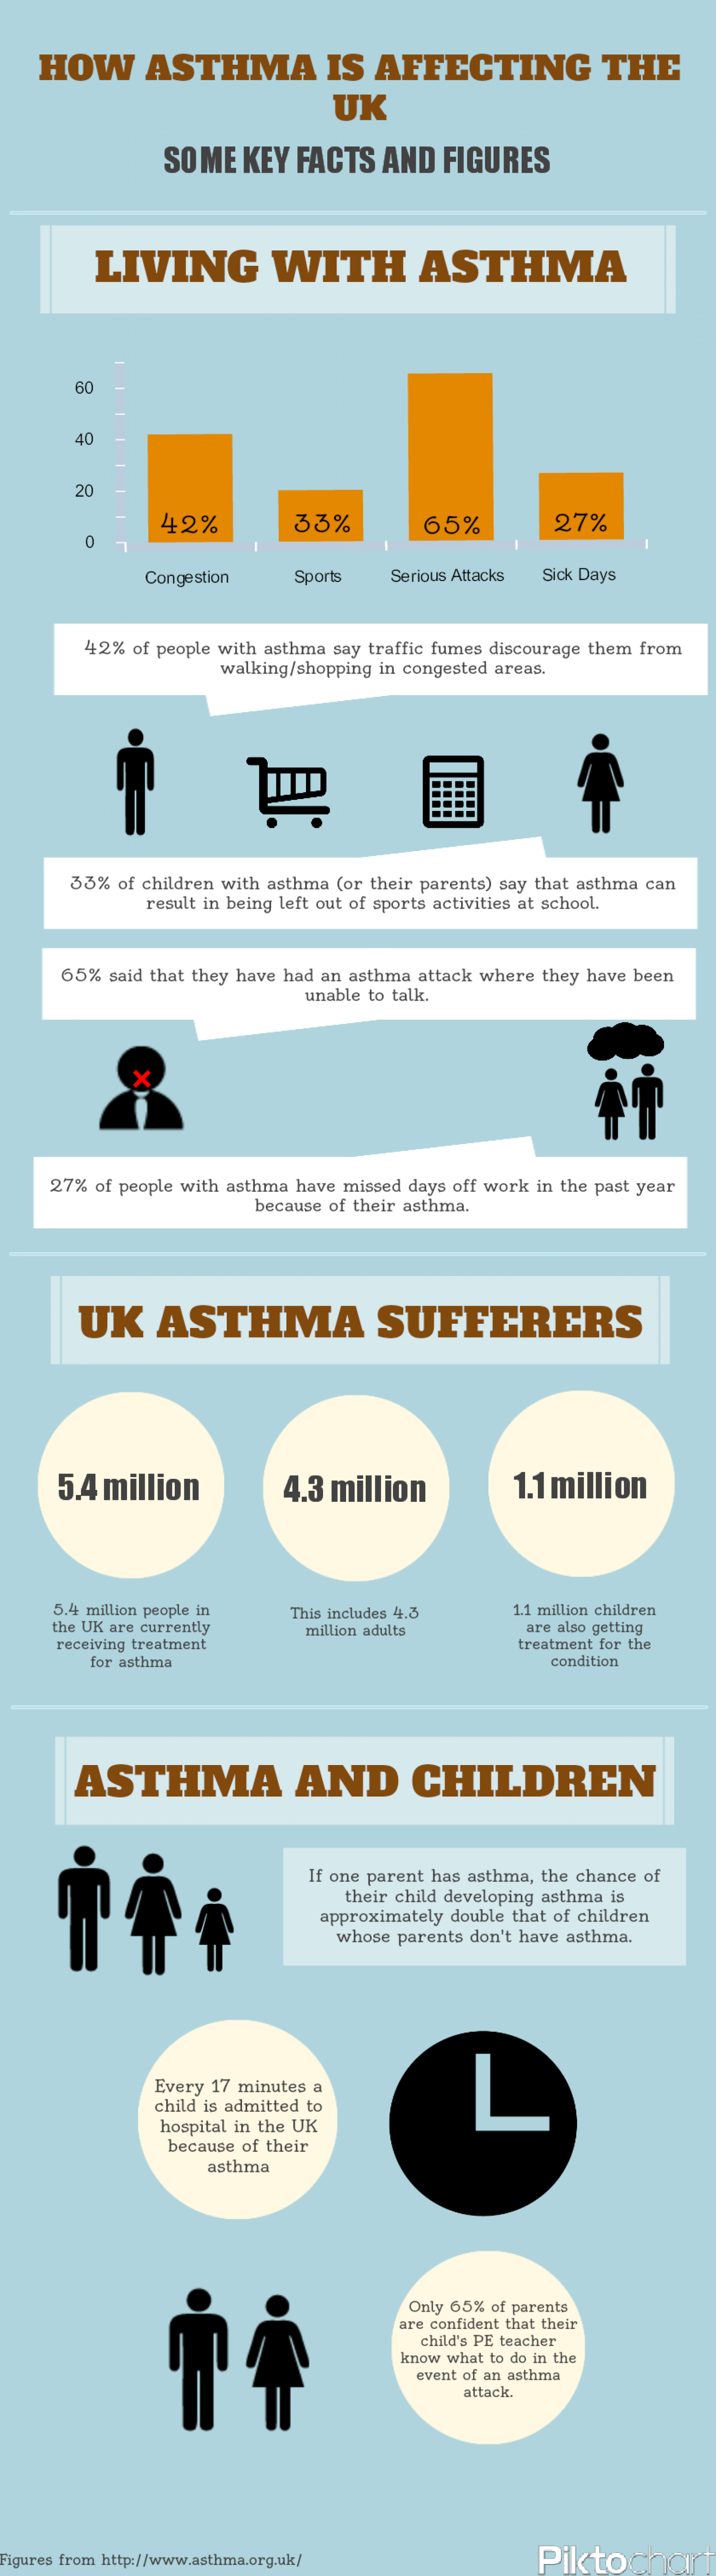 Asthma in the UK Infographic